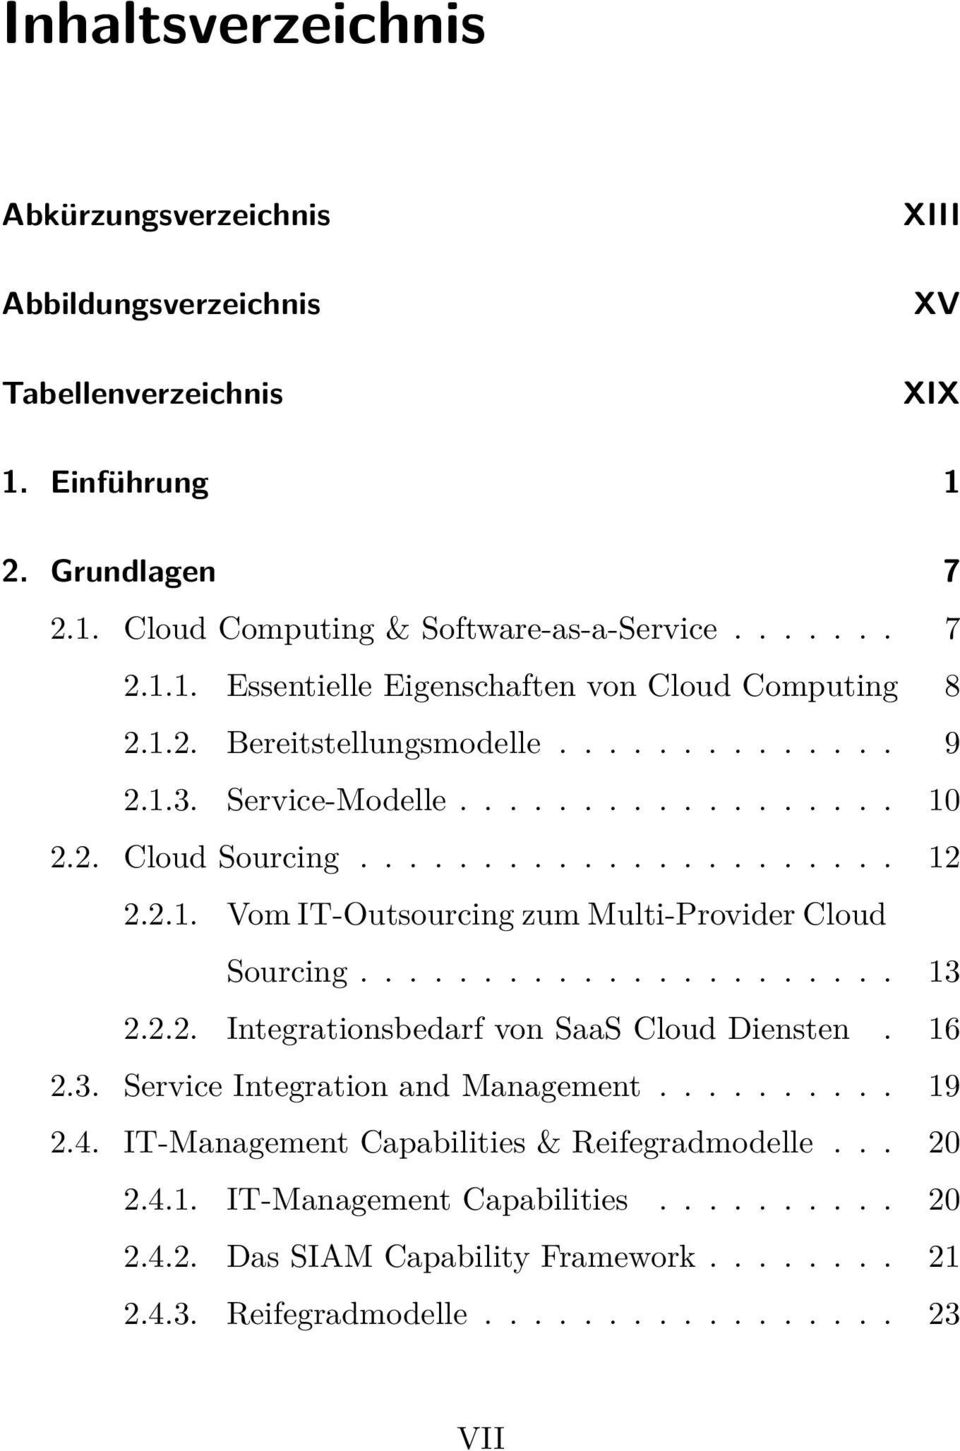 ..................... 13 2.2.2. Integrationsbedarf von SaaS Cloud Diensten. 16 2.3. Service Integration and Management.......... 19 2.4. IT-Management Capabilities & Reifegradmodelle... 20 2.